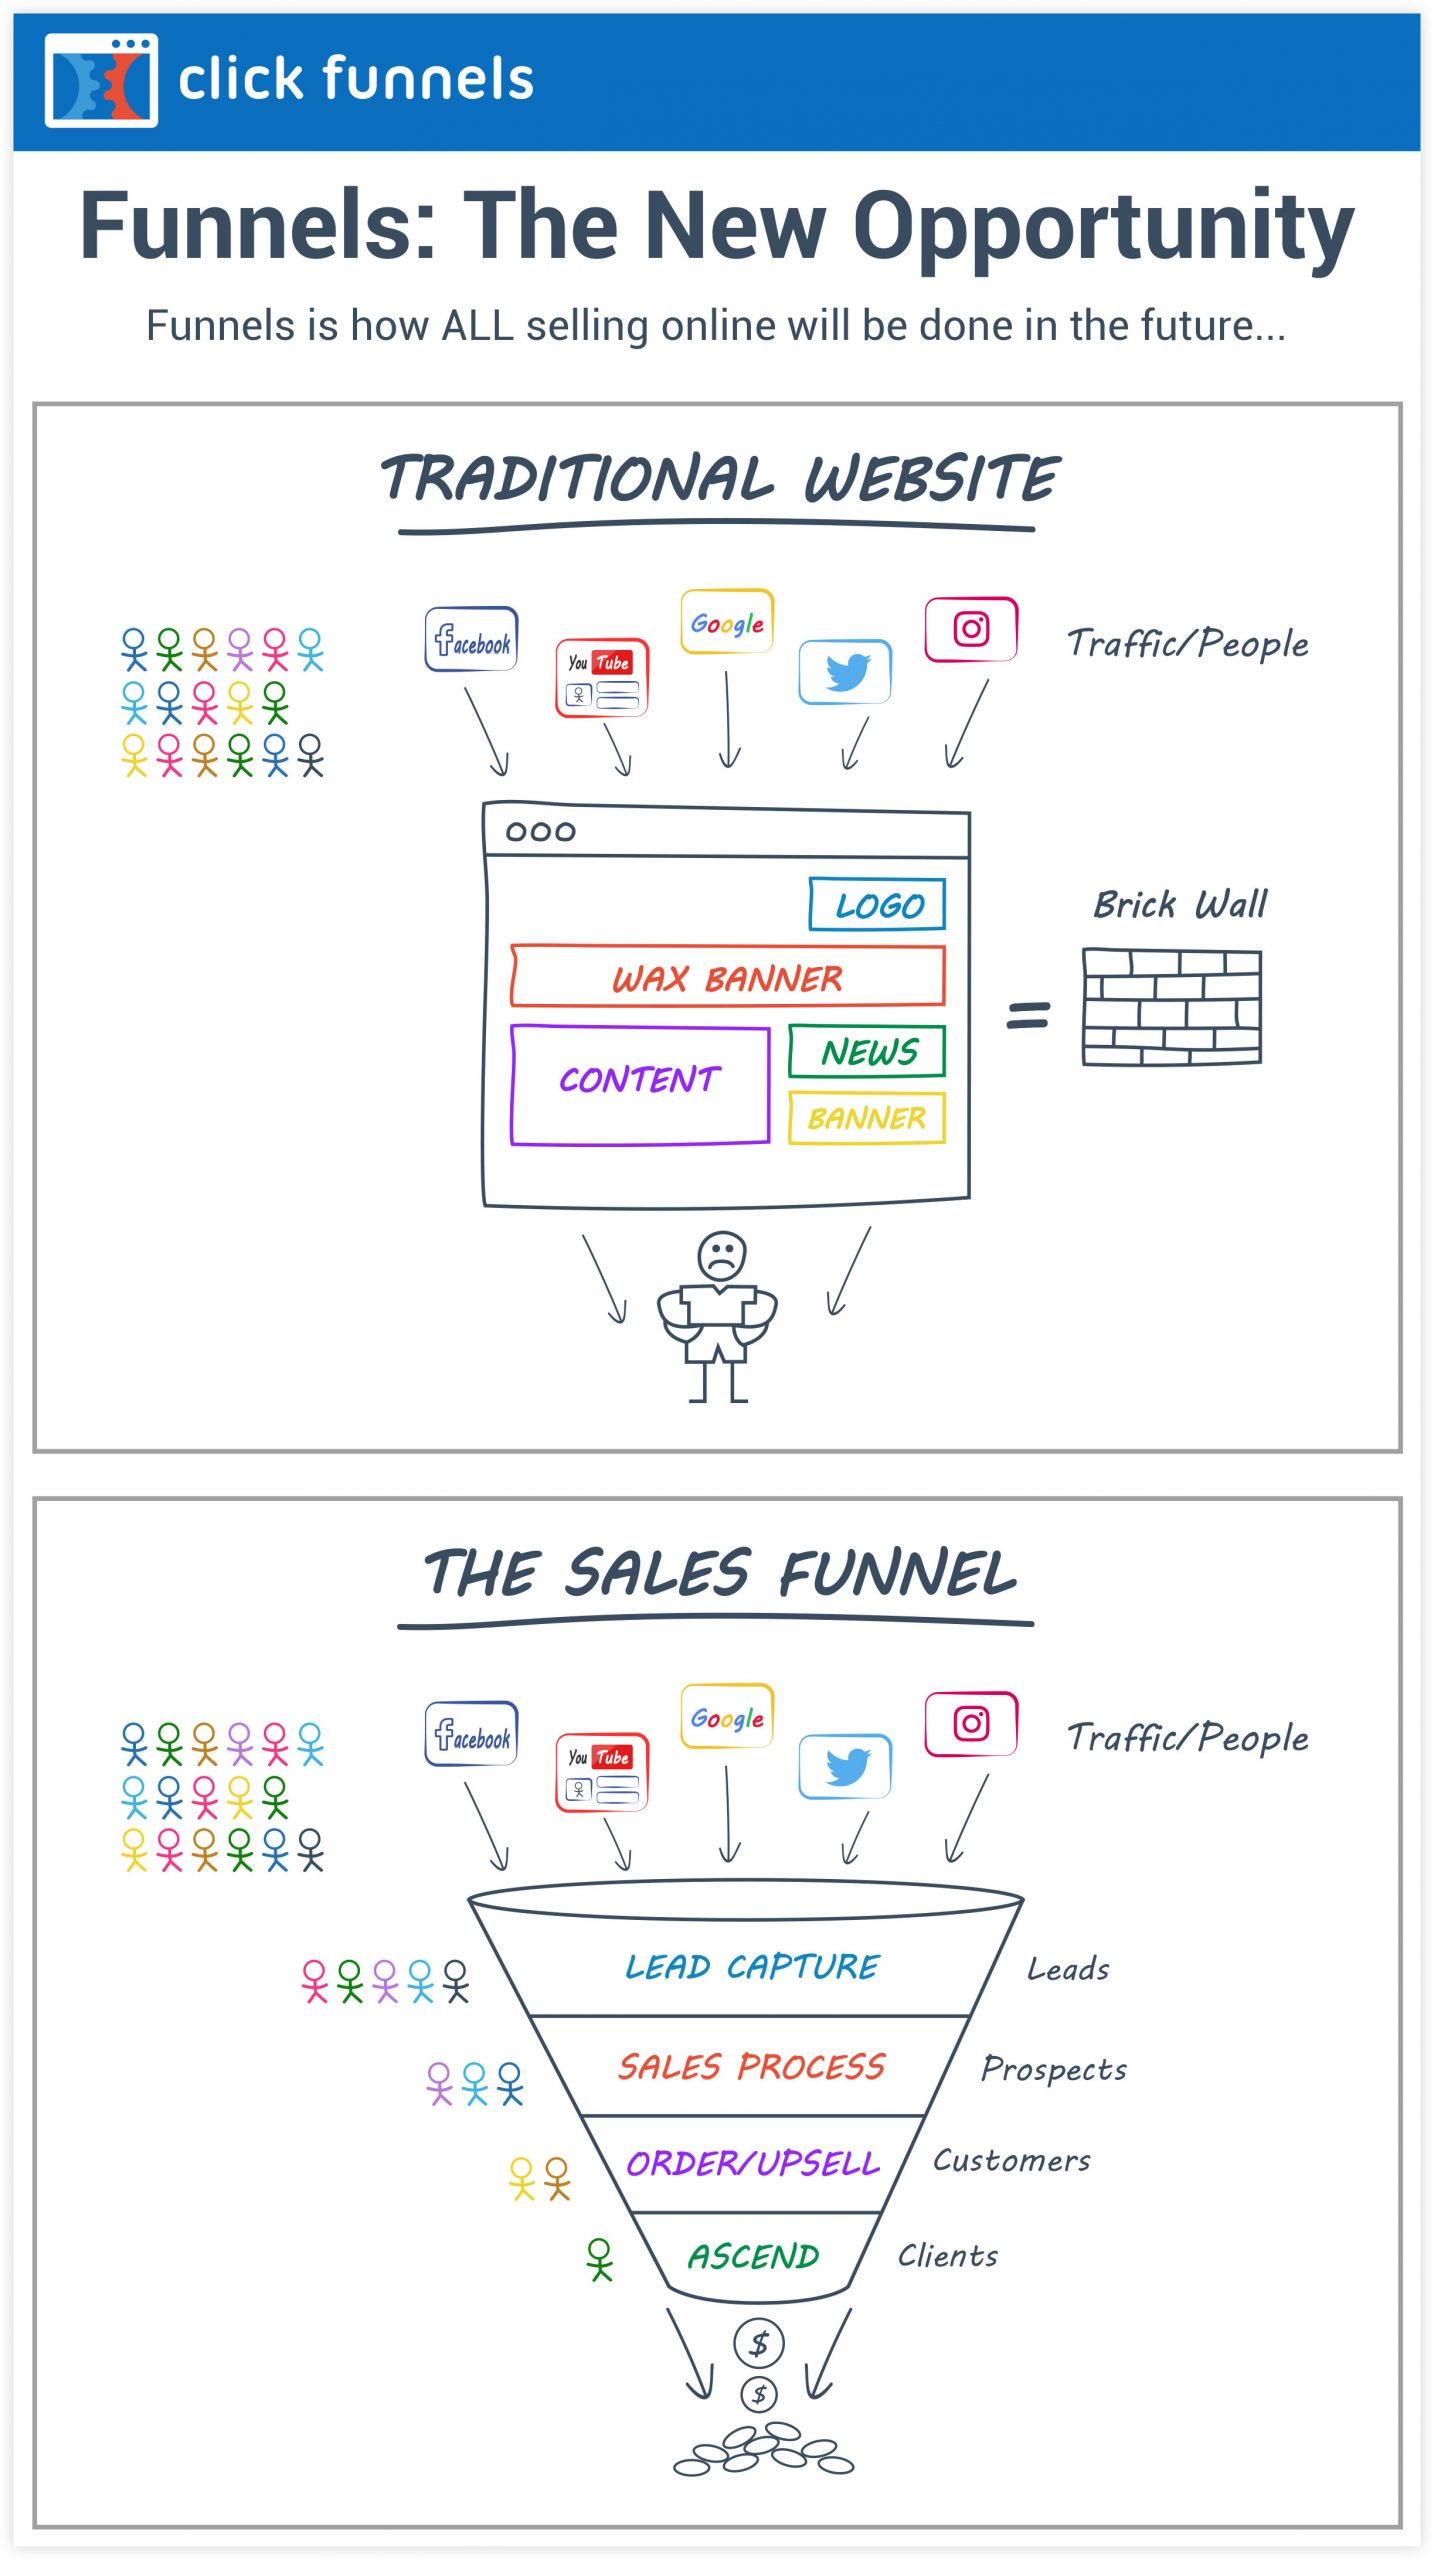 ClickFunnels - Why Sales Funnels are Better than Websites